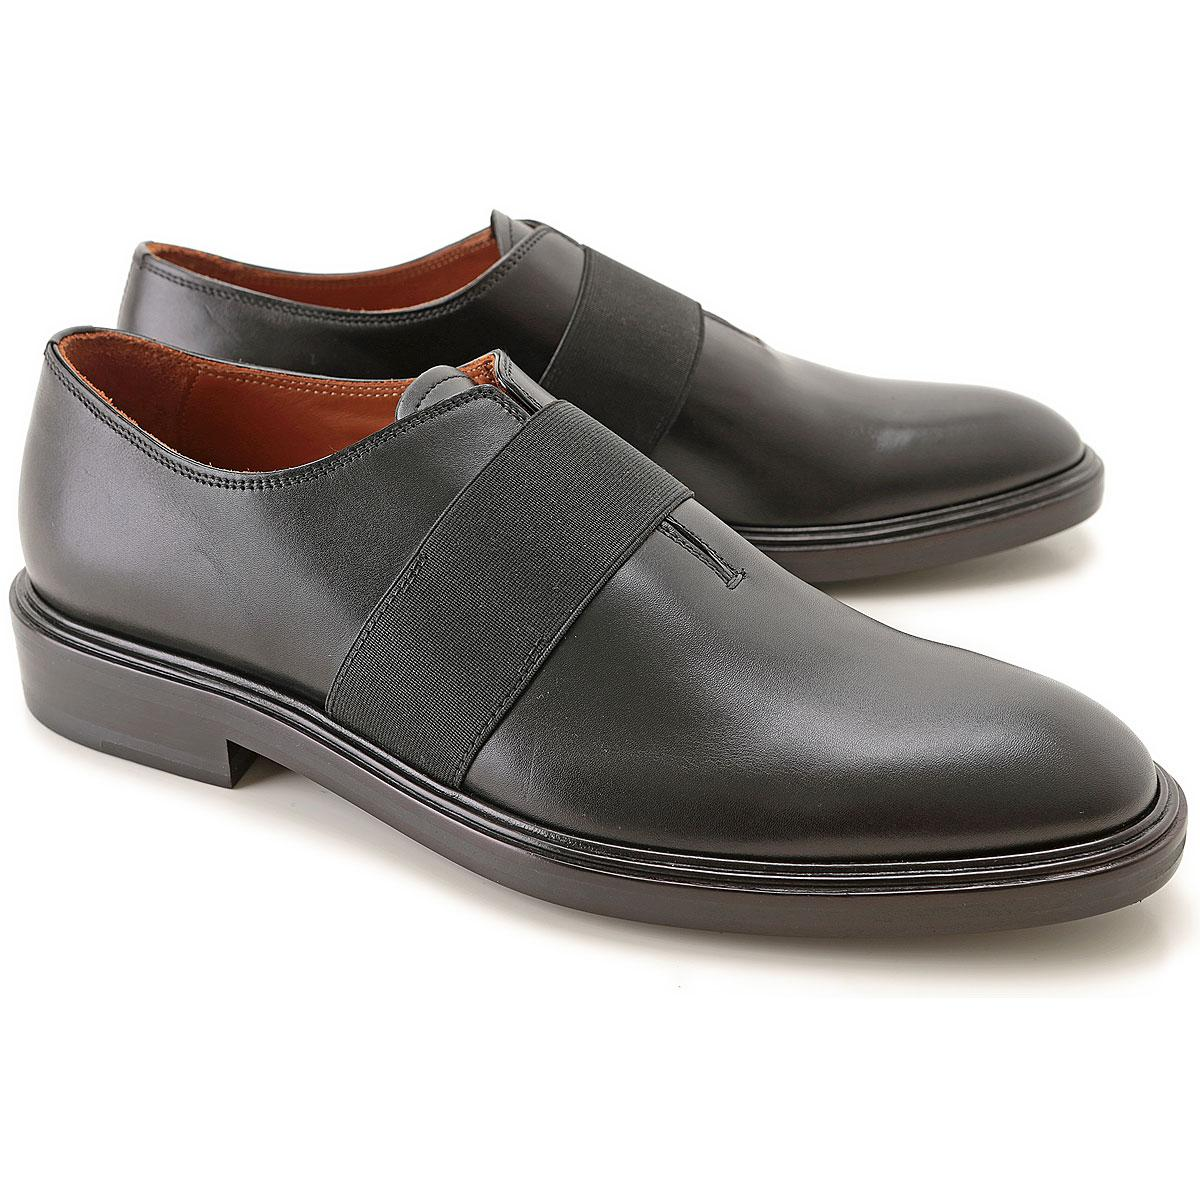 06547522655 Lyst - Givenchy Loafers For Men On Sale in Black for Men